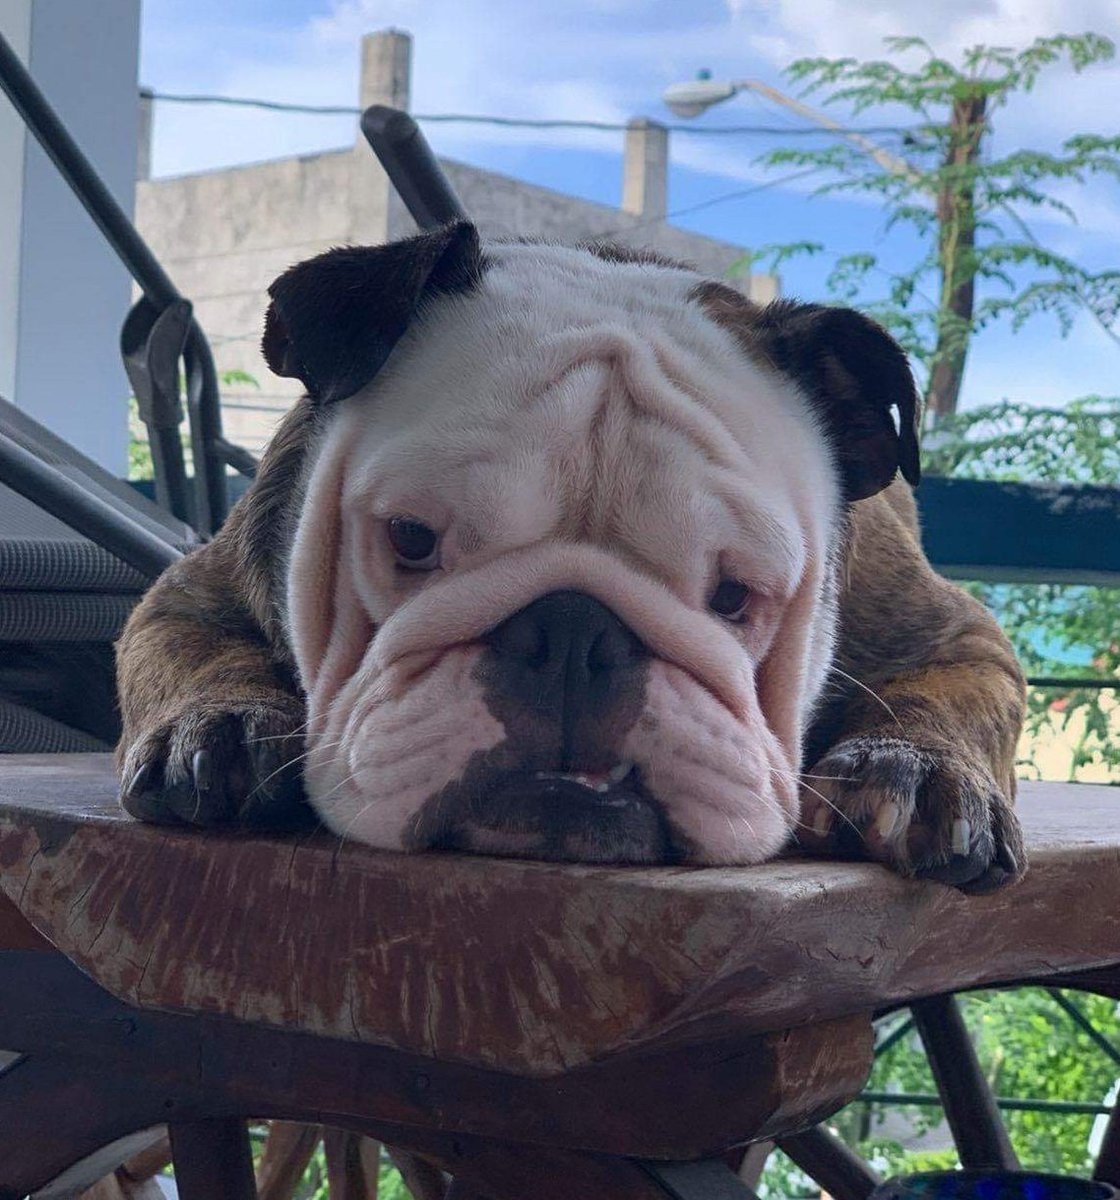 A thread about CARDO Our spoiled English bulldog baby 😍😂😅 Just to brighten up your day if you ever need it 😉